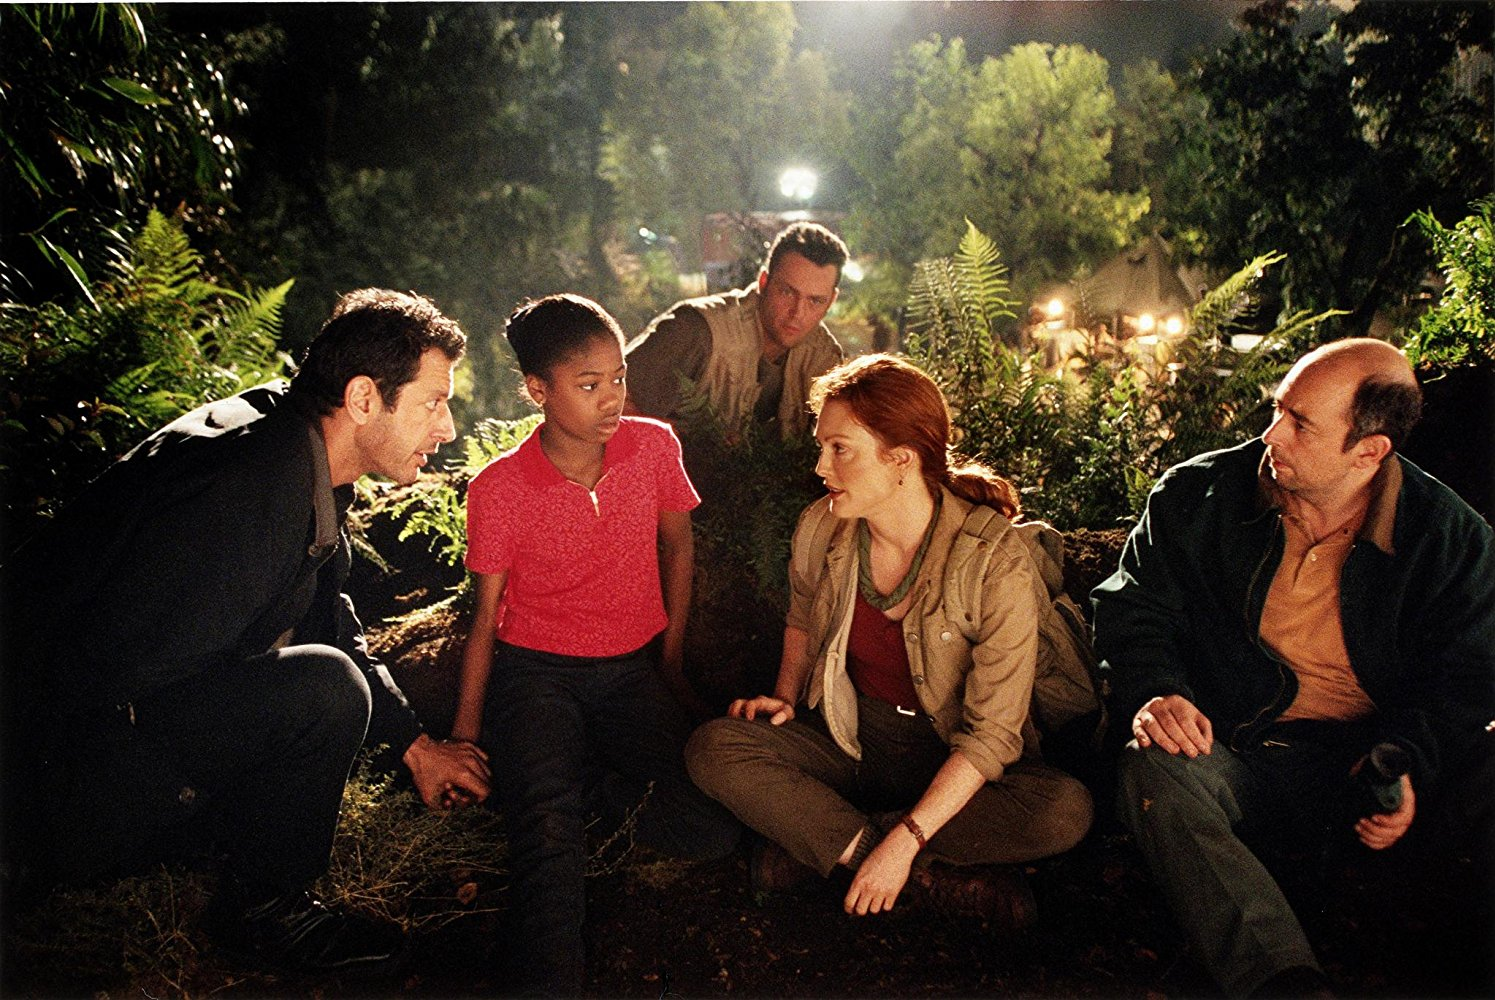 Jeff Goldblum, Vanessa Lee Chester, Vince Vaughn, Julianne Moore, and Richard Schiff in THE LOST WORLD: JURASSIC PARK (1997)